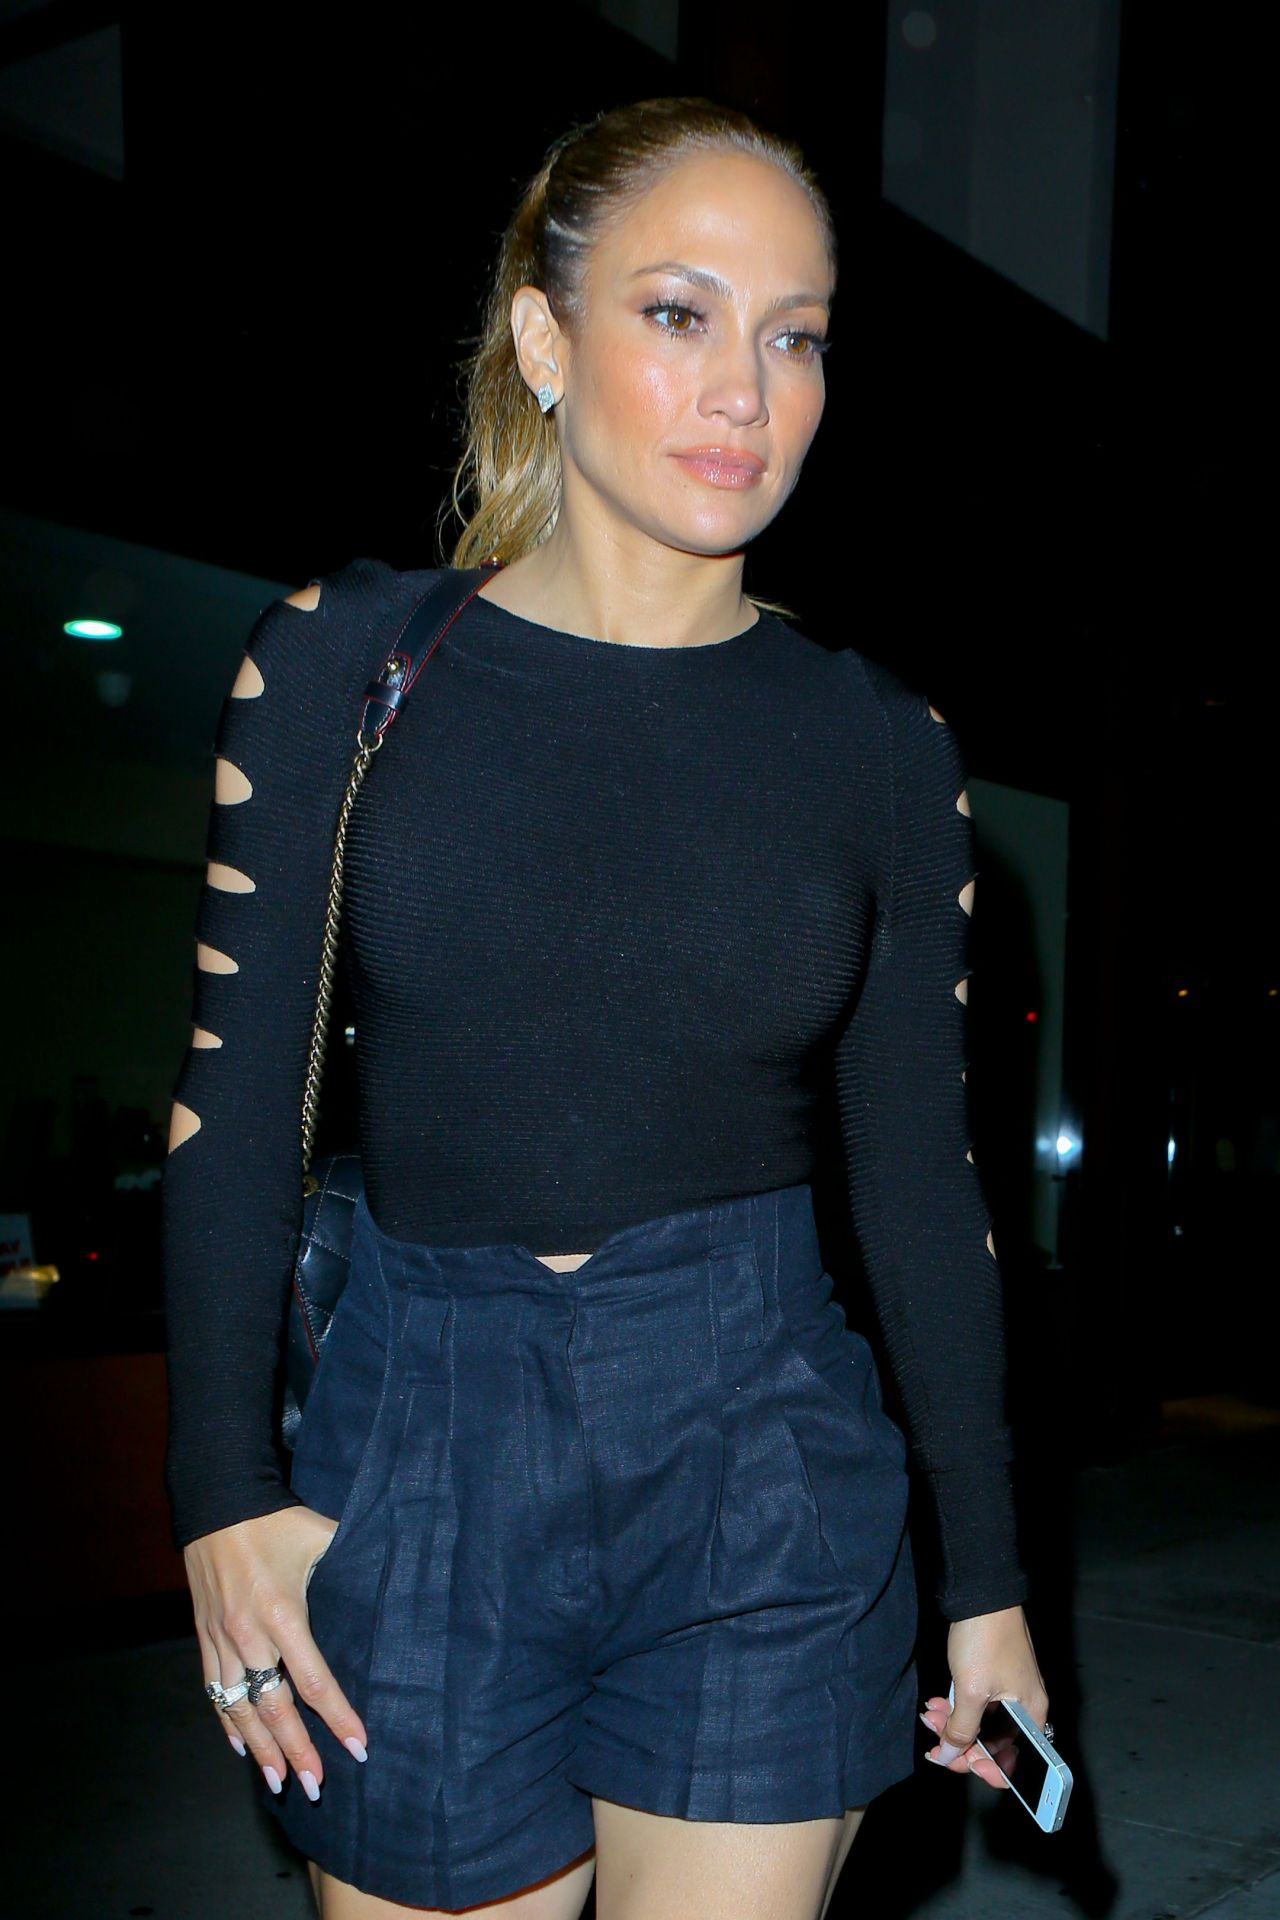 Jennifer Lopez at Crustacean in Beverly Hills - October 2014